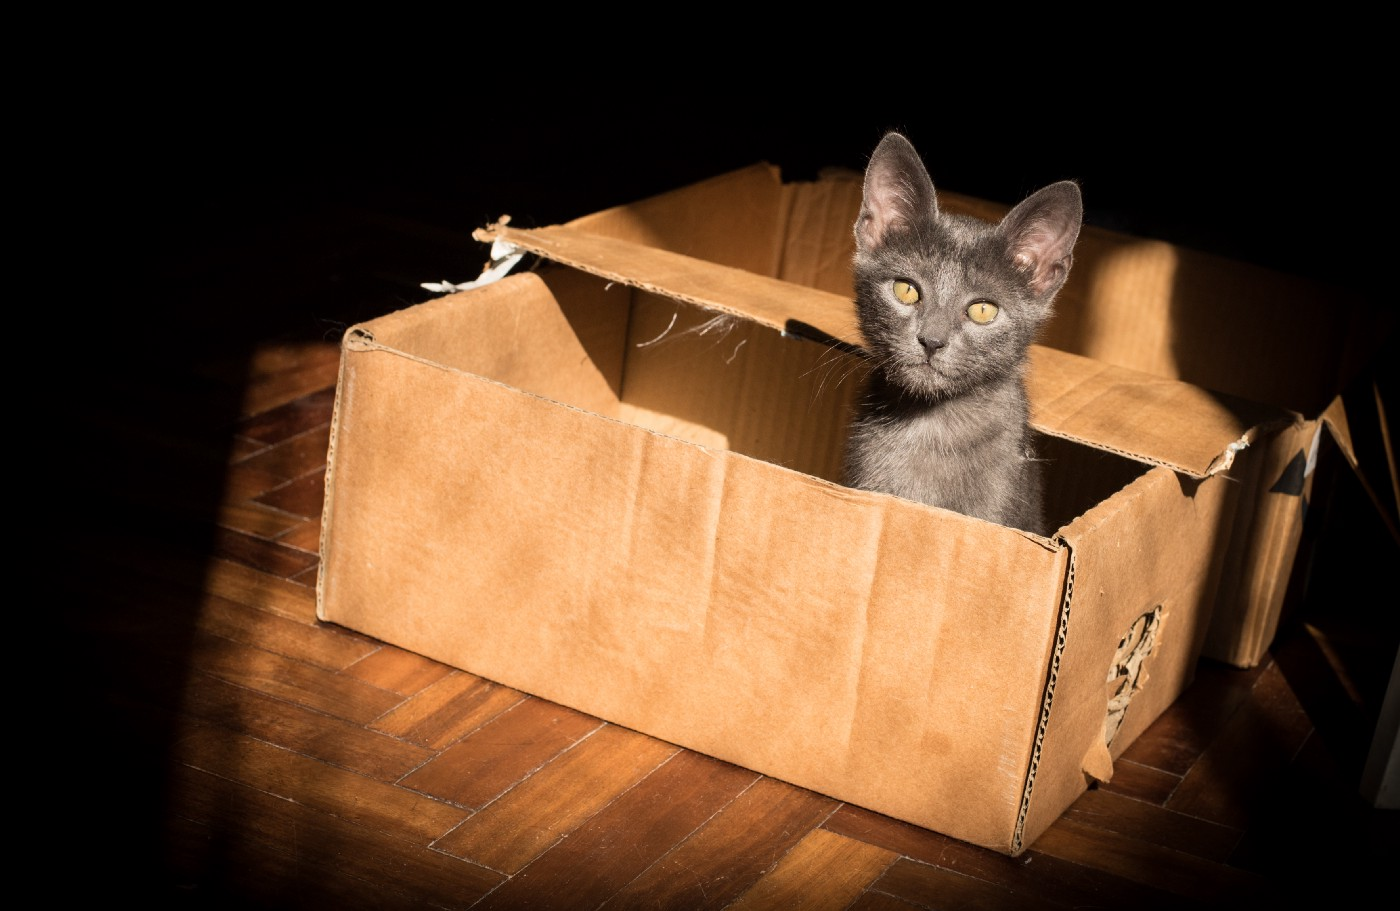 This is the cover image for the article from unsplash—shows a cute cat in a cardboard box